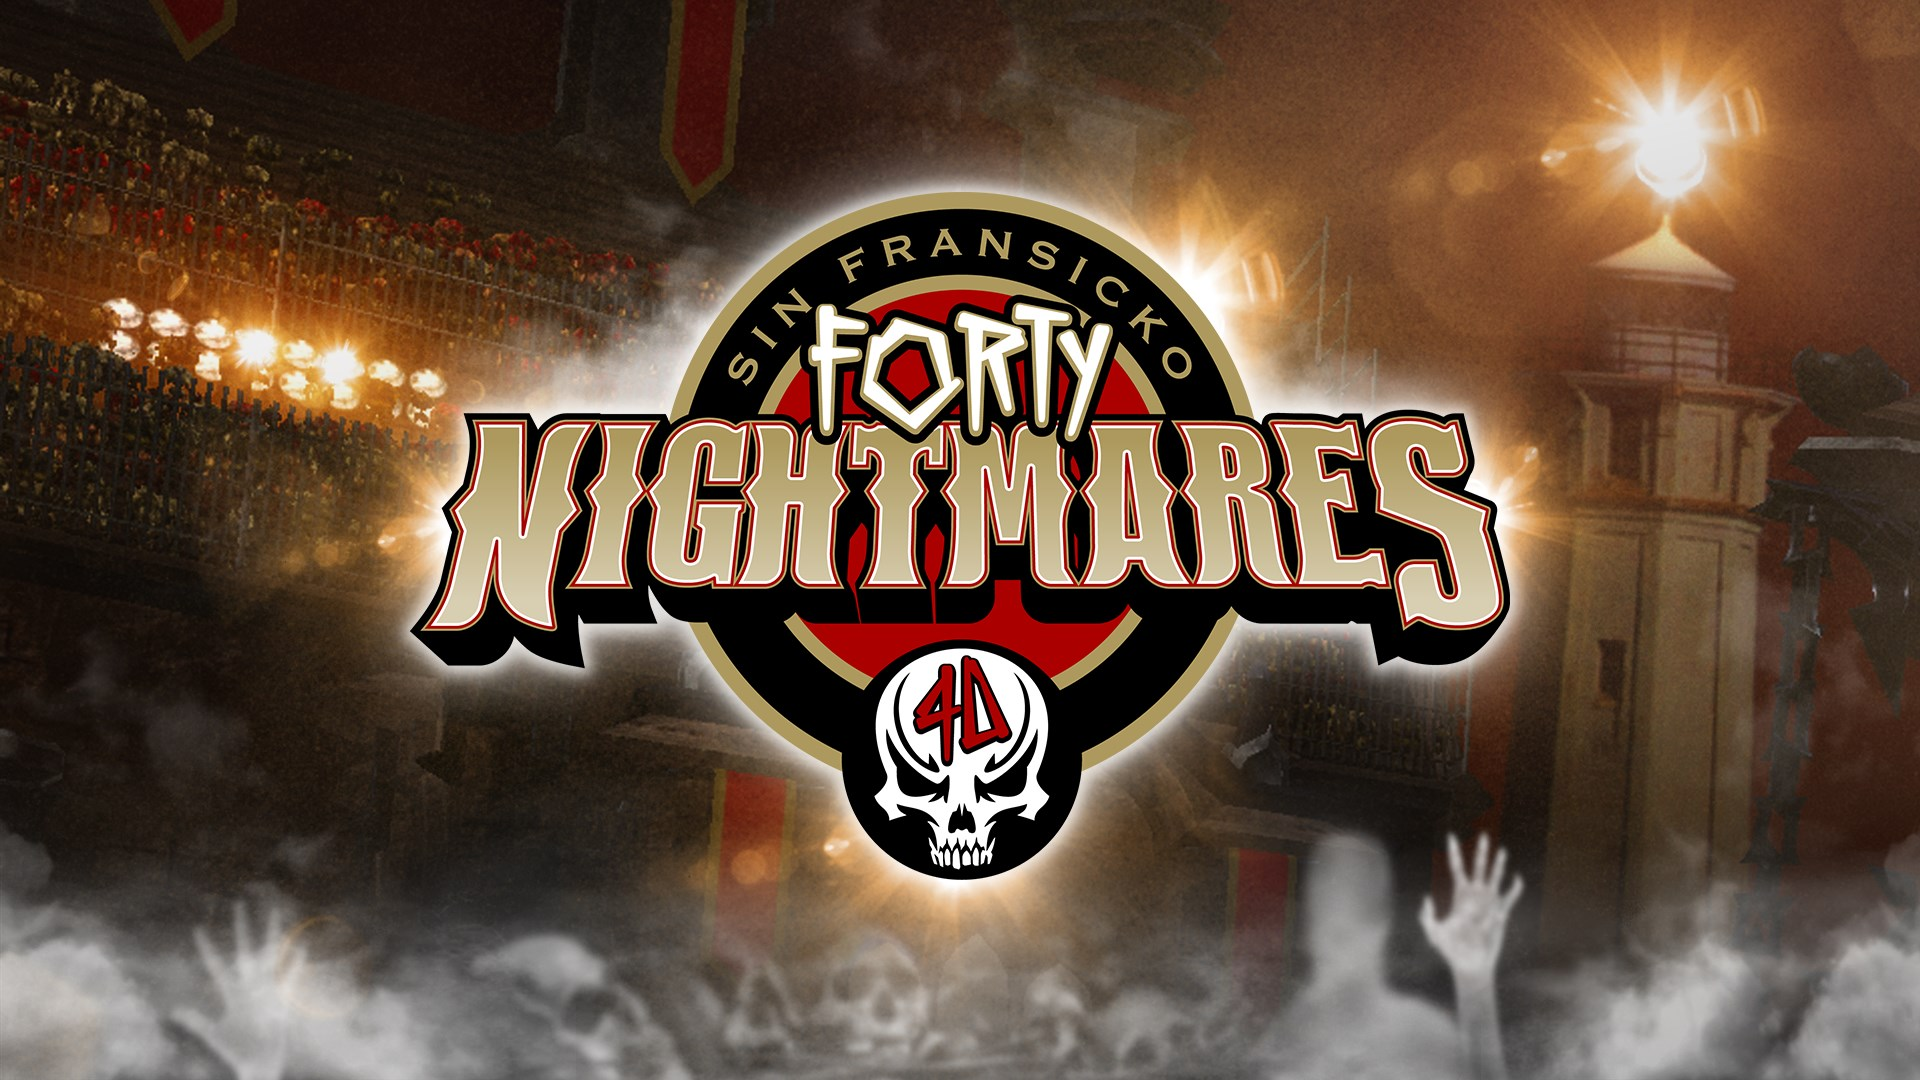 Sin Fransicko Forty Nightmares